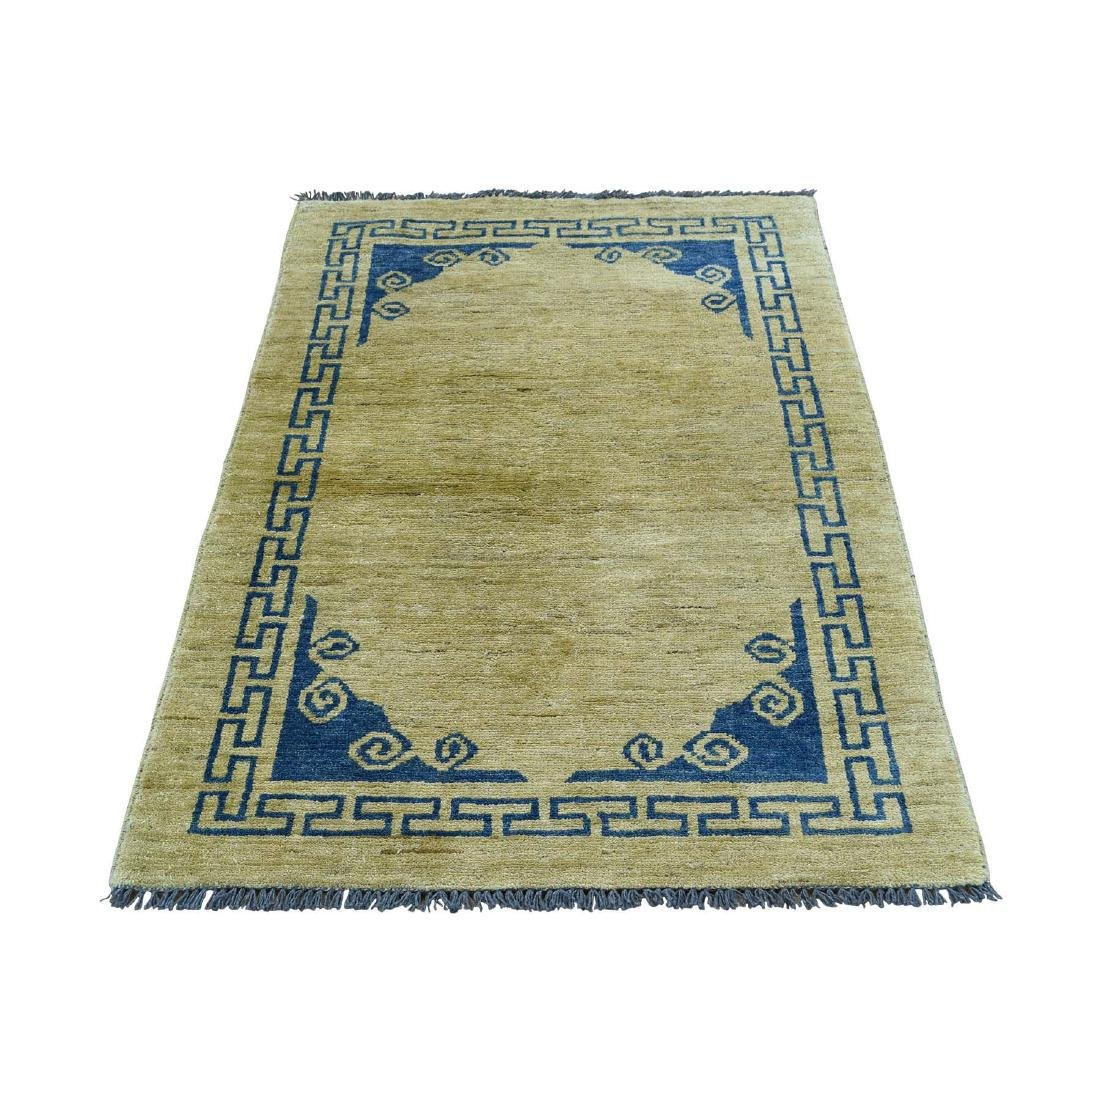 Hand-Knotted Peshawar With Knotan Design Rug 2.9x4.1